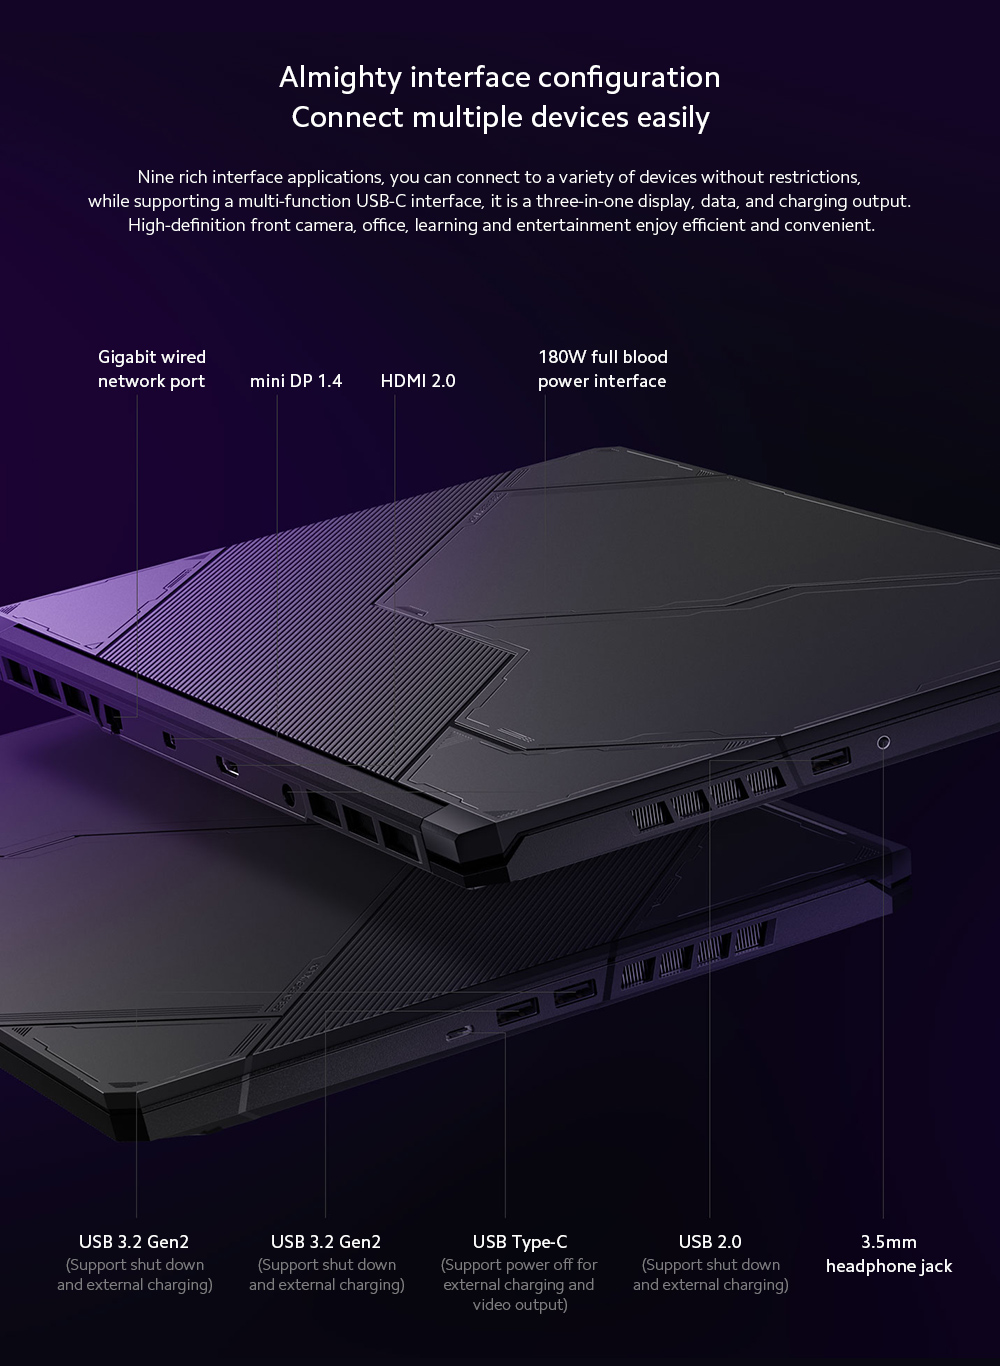 Xiaomi Redmi G Gaming Laptop Almighty interface configuration